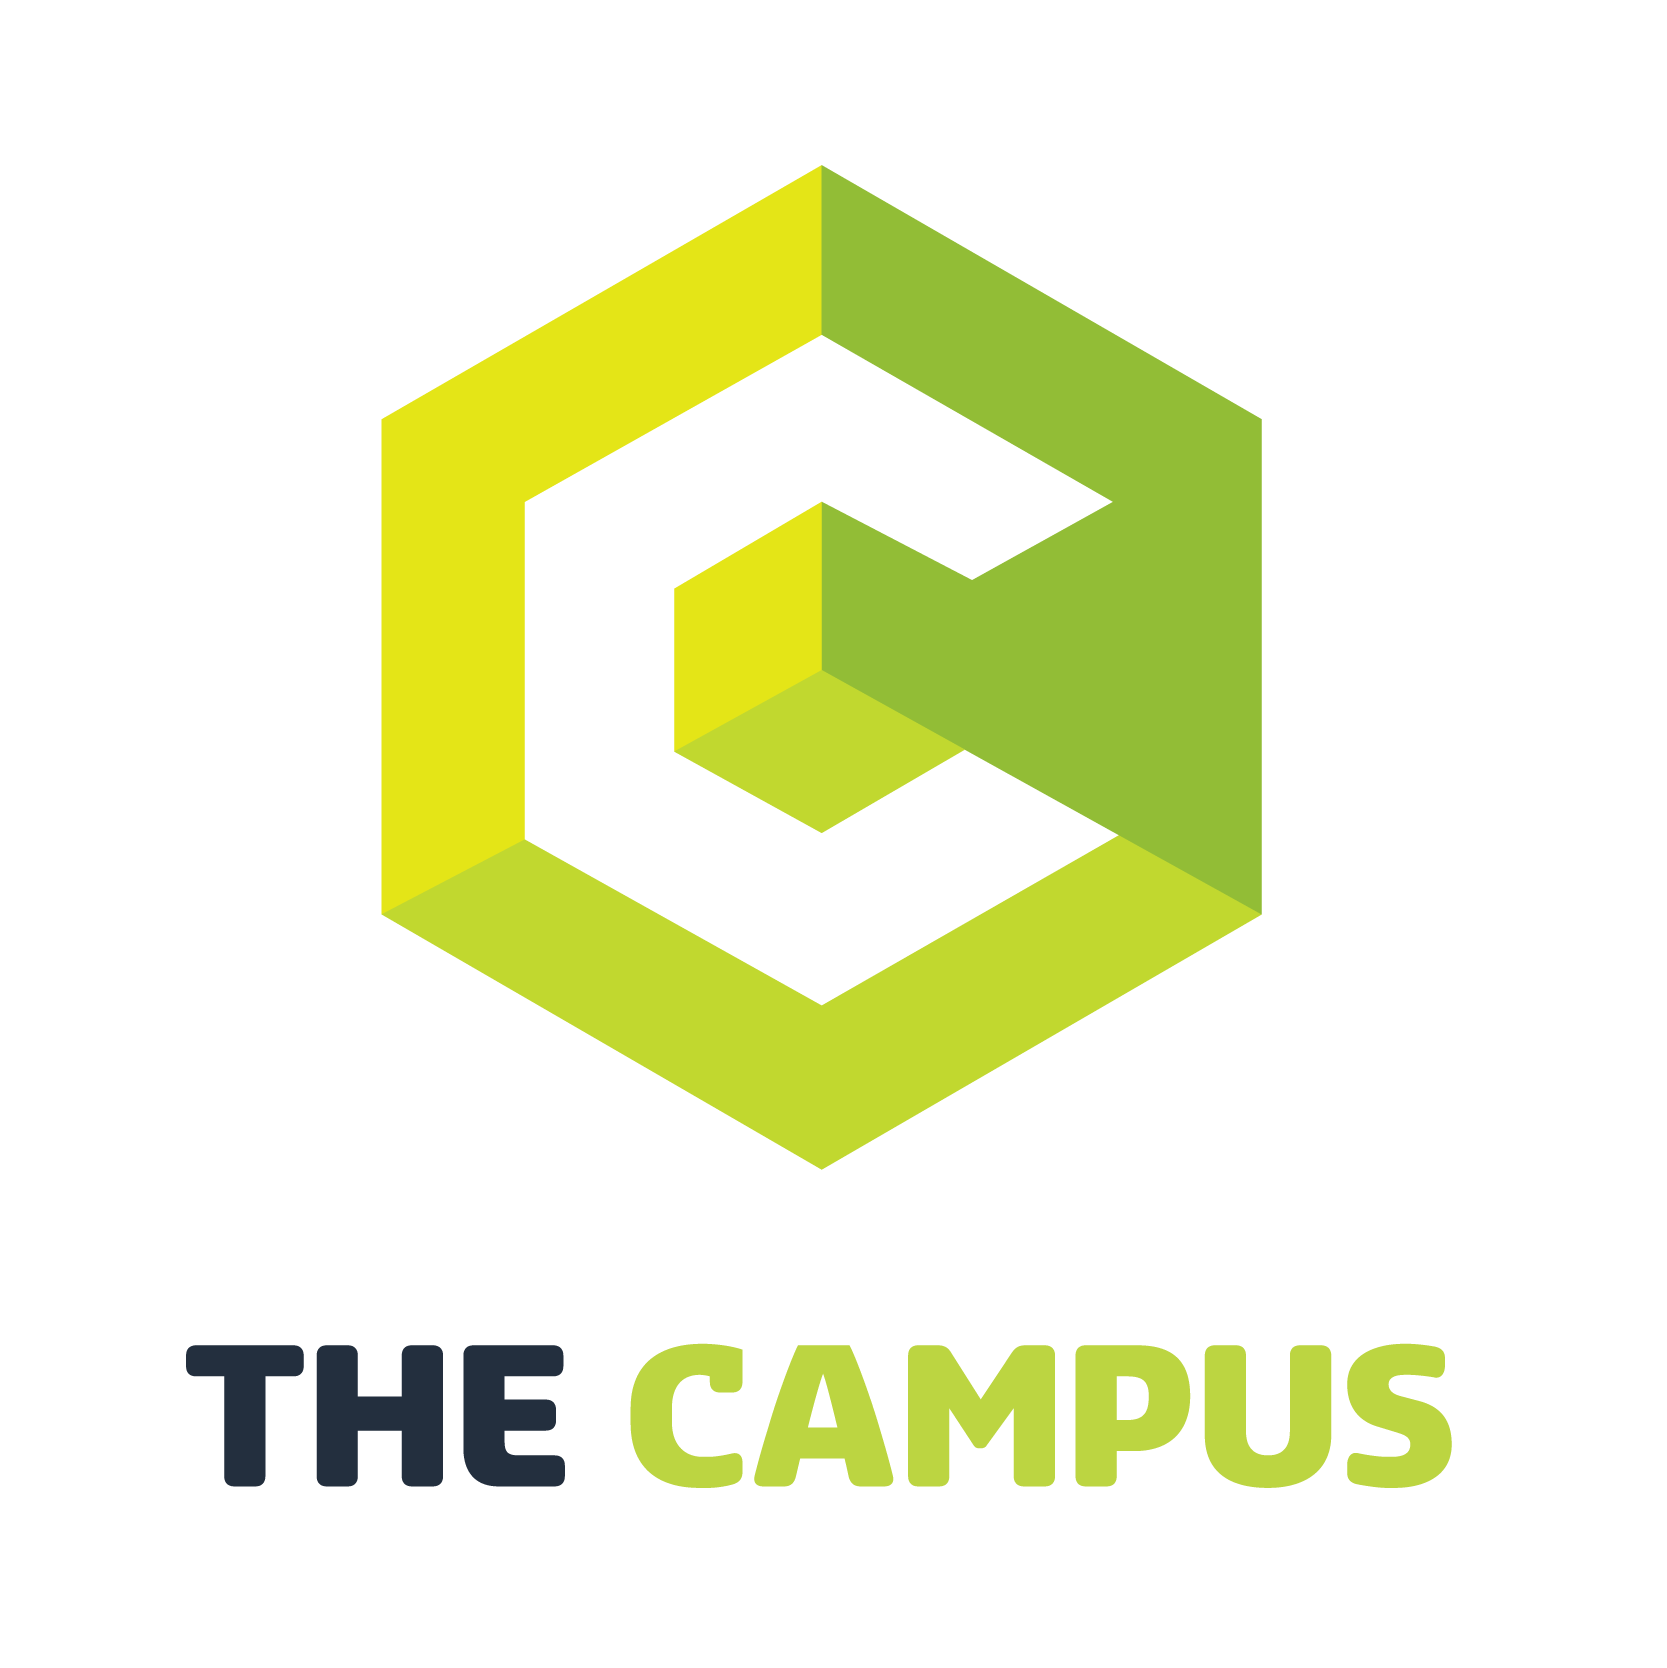 The campus logo